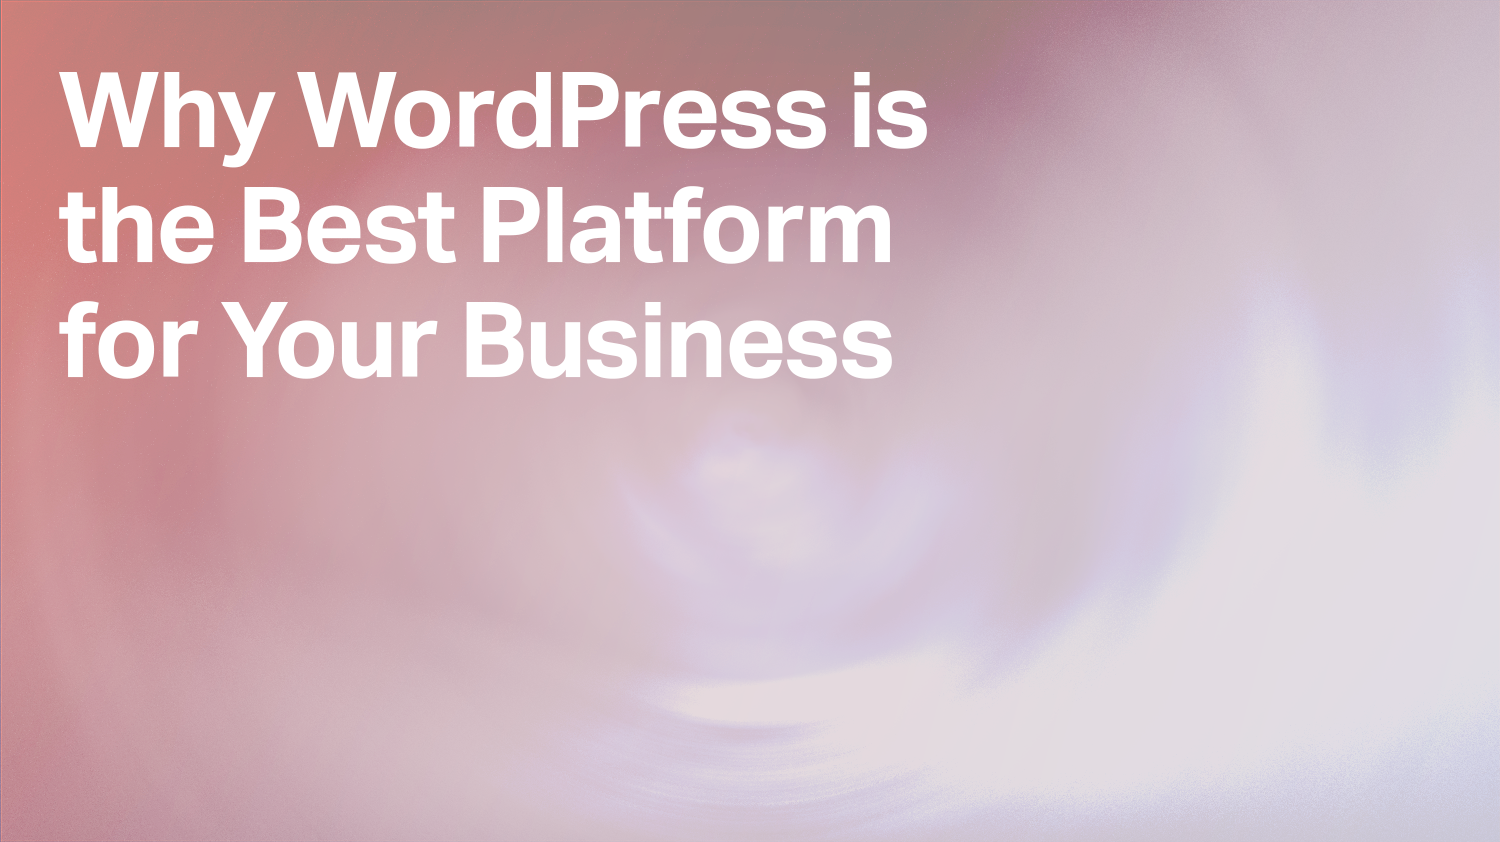 Why WordPress is the Best Platform for Your Business